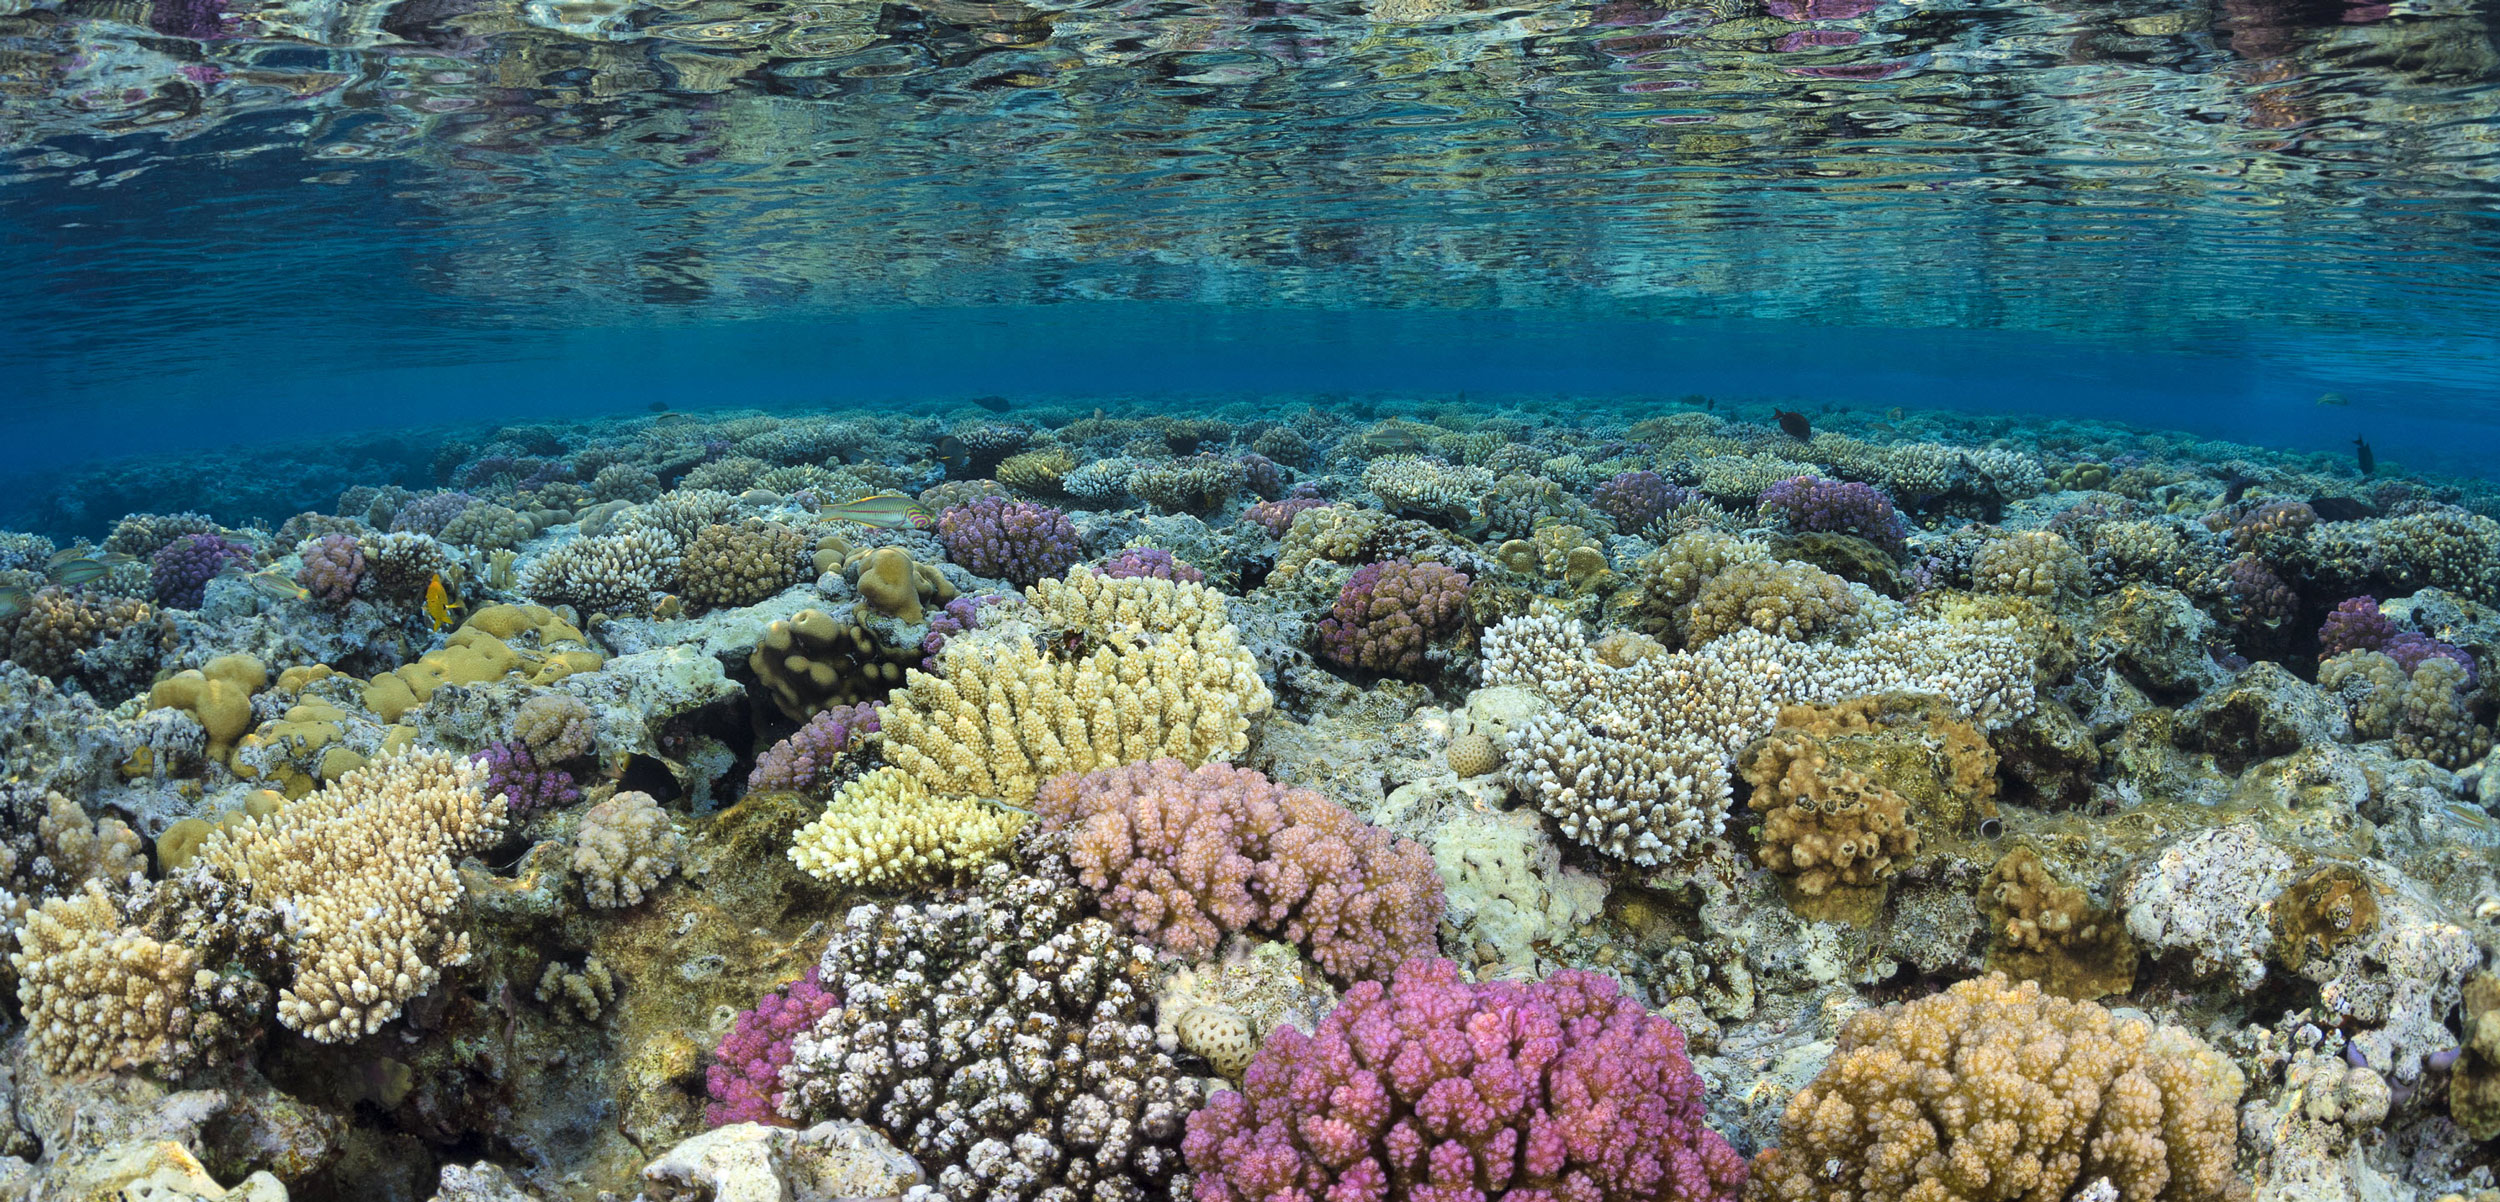 coral reef, Gulf of Aqaba, Red Sea